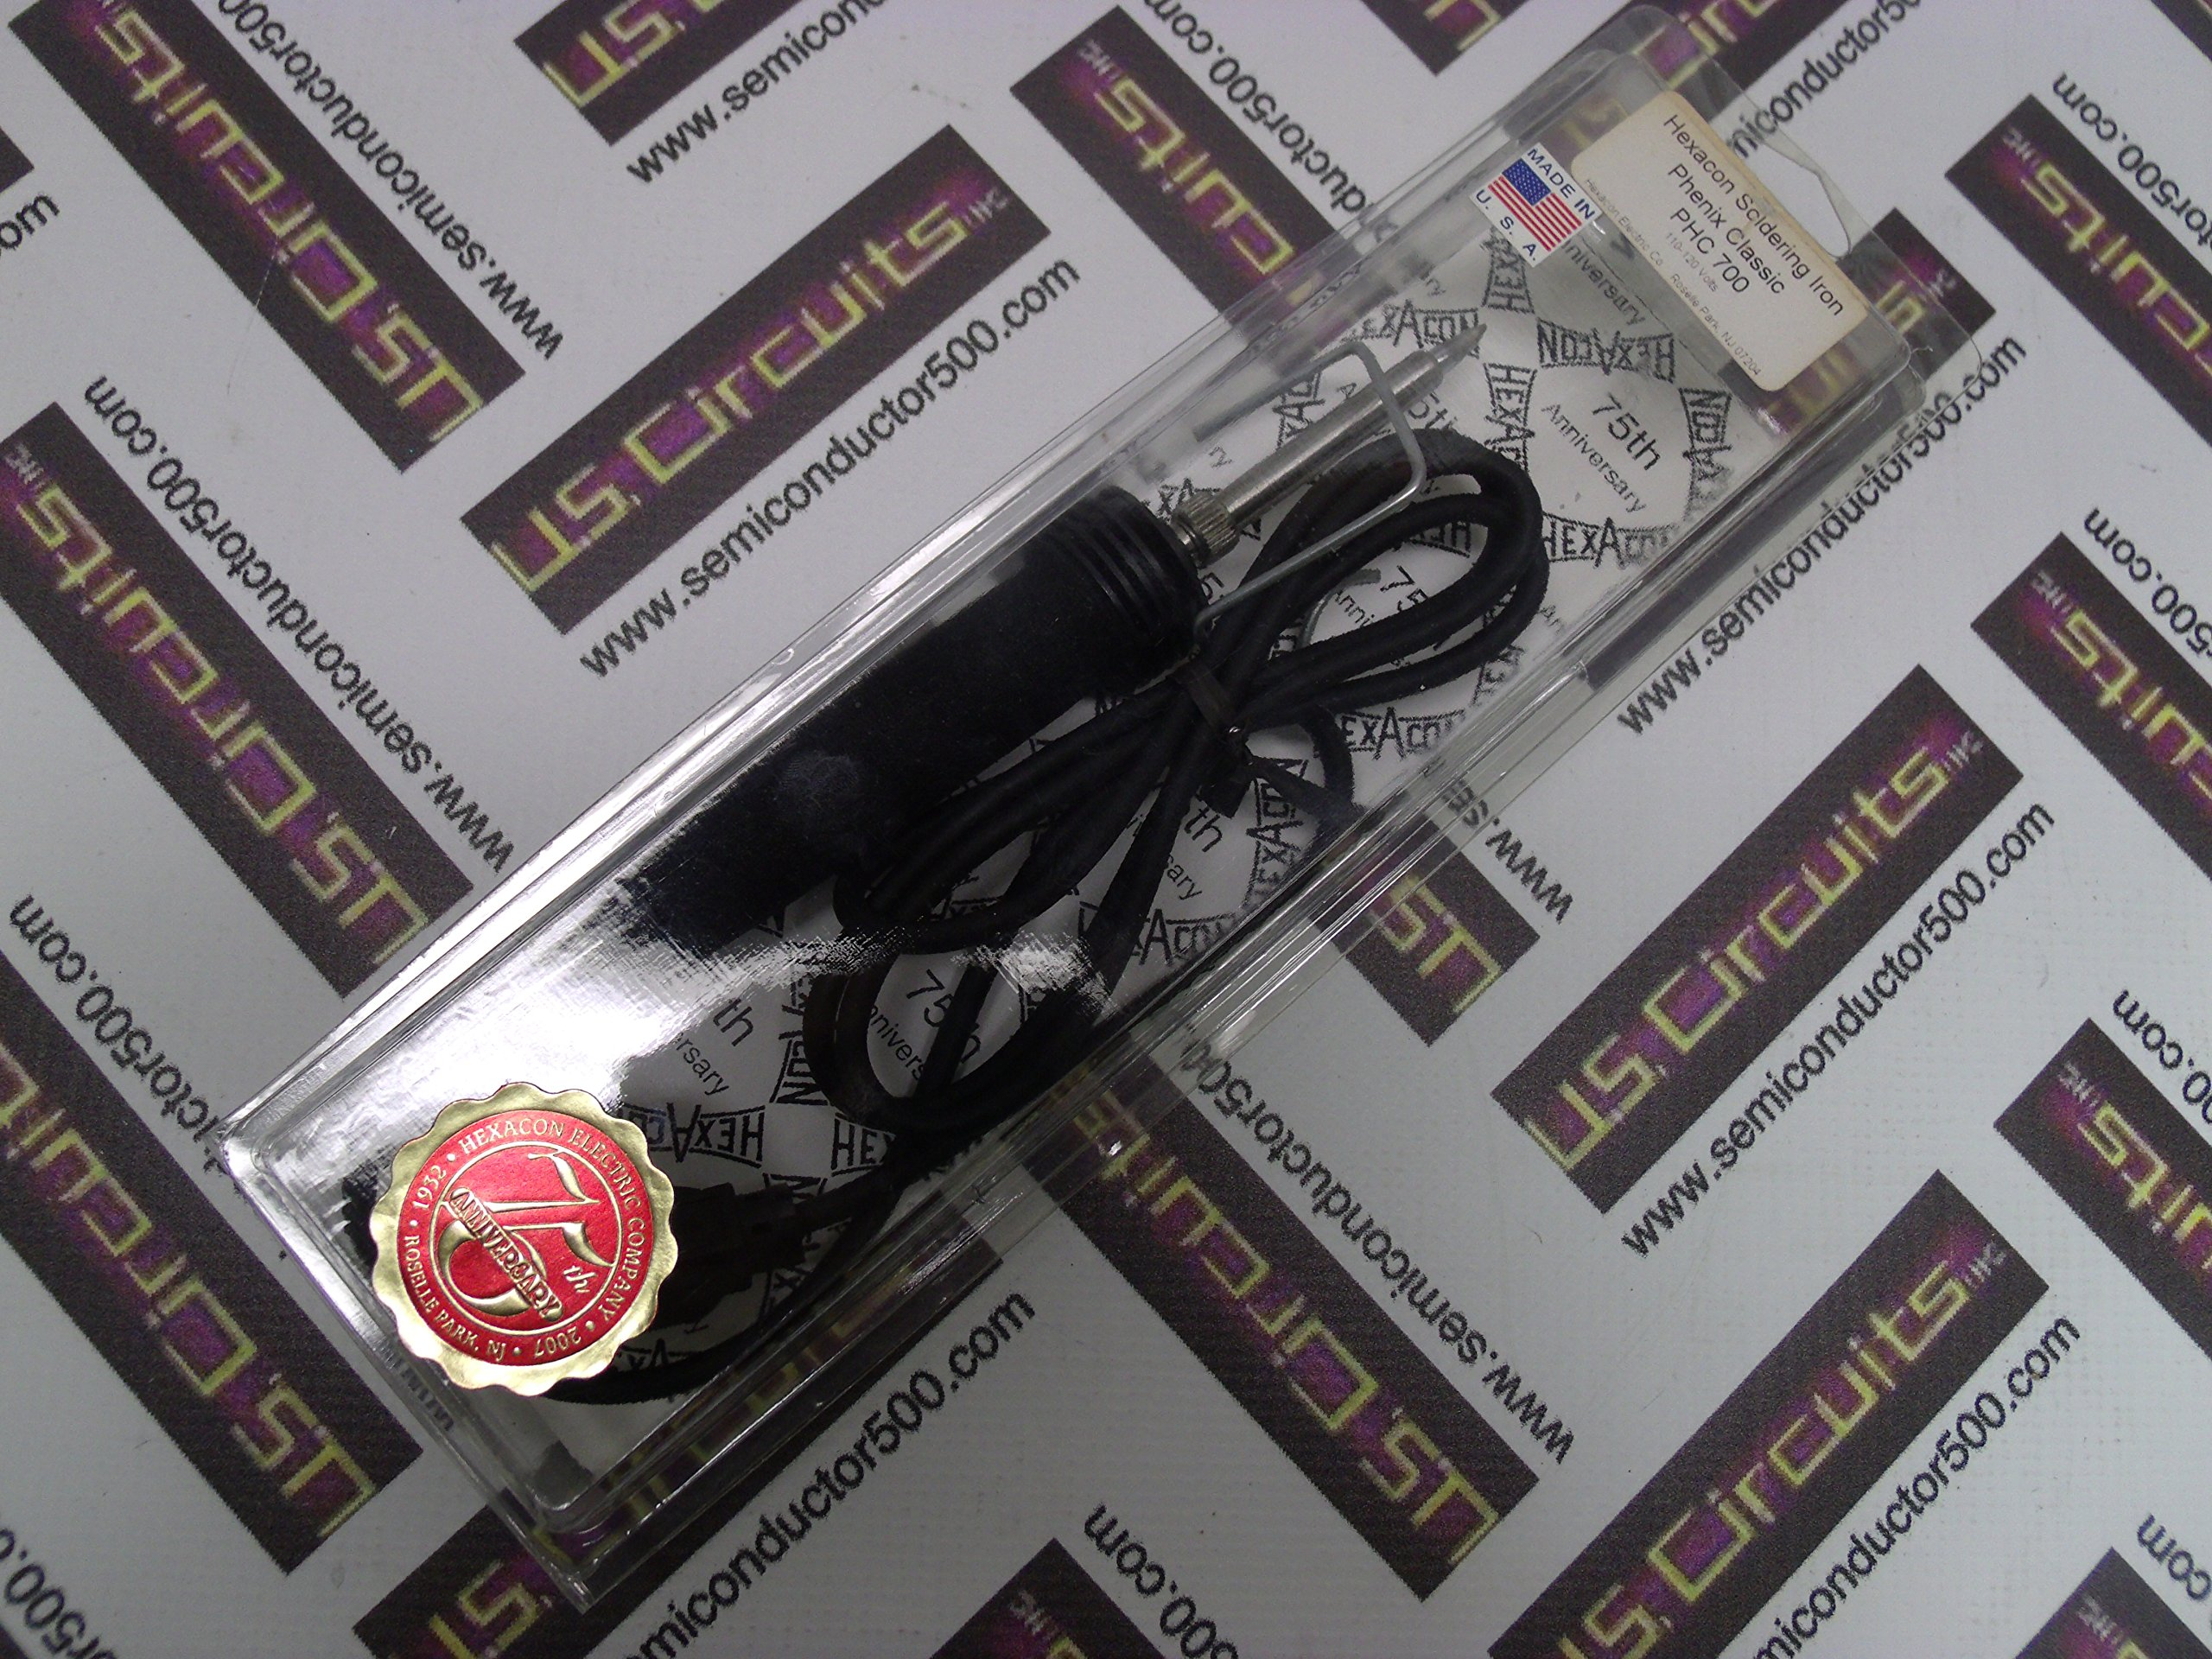 Hexacon Soldering Iron Phoenix Classic PHC700 MADE IN THE USA. by Hexacon